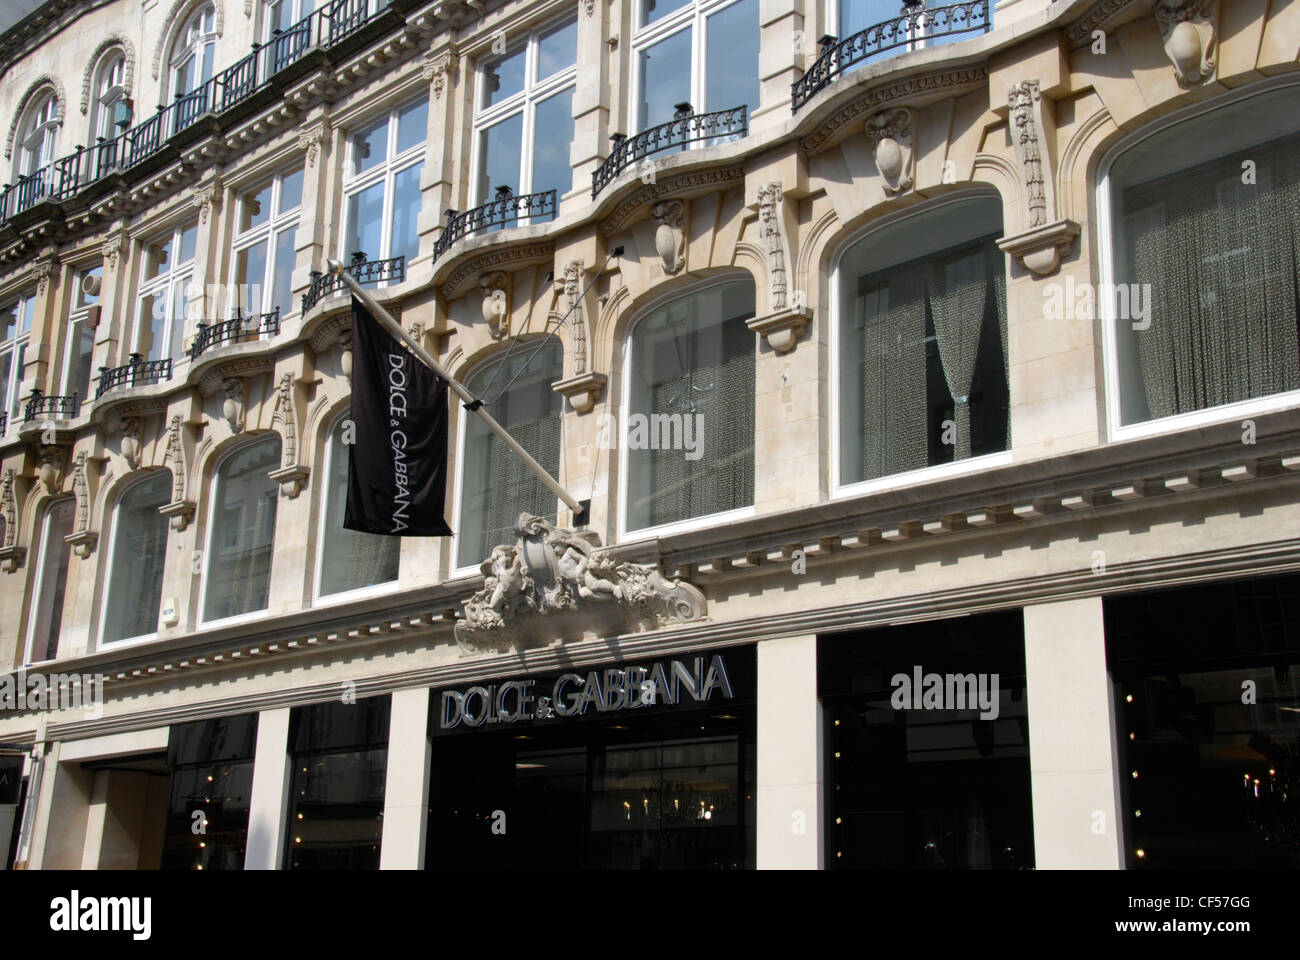 The facade of Dolce and Gabbana desiger fashion store on Old Bond Street. - Stock Image